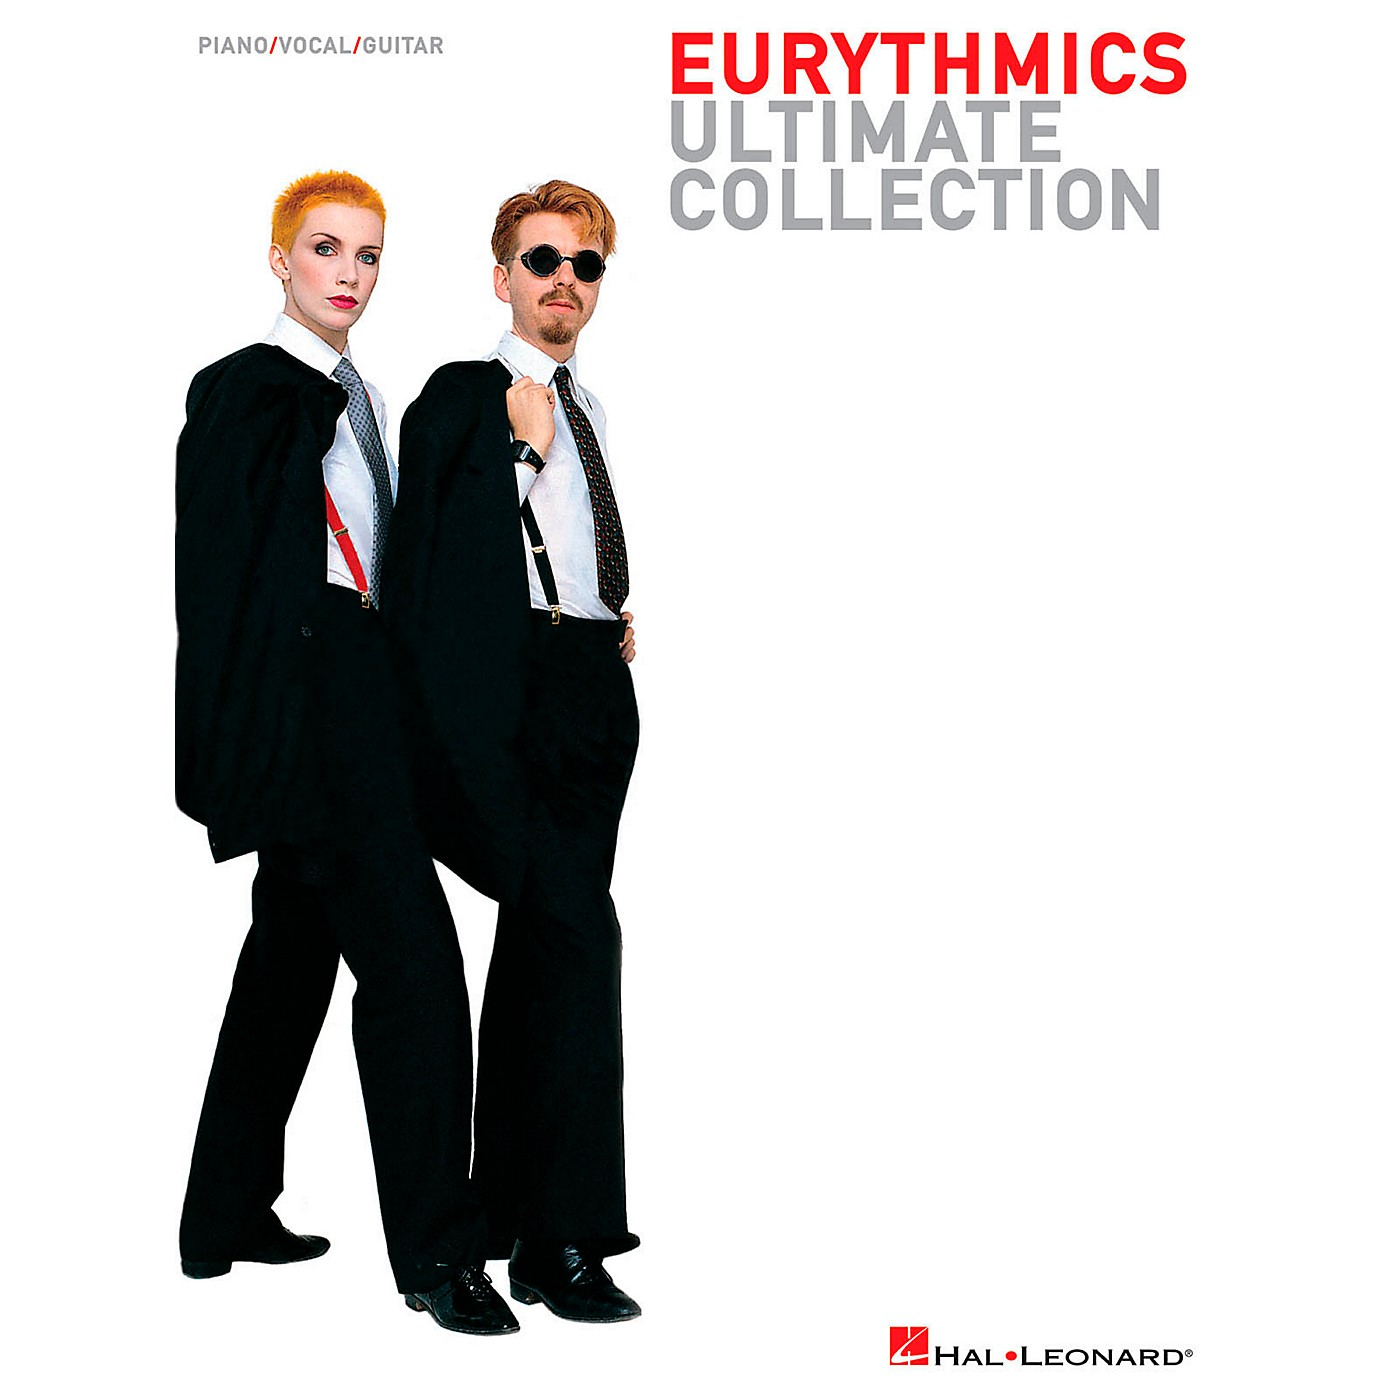 Hal Leonard Eurythmics - Ultimate Collection Songbook for Piano/Vocal/Guitar thumbnail